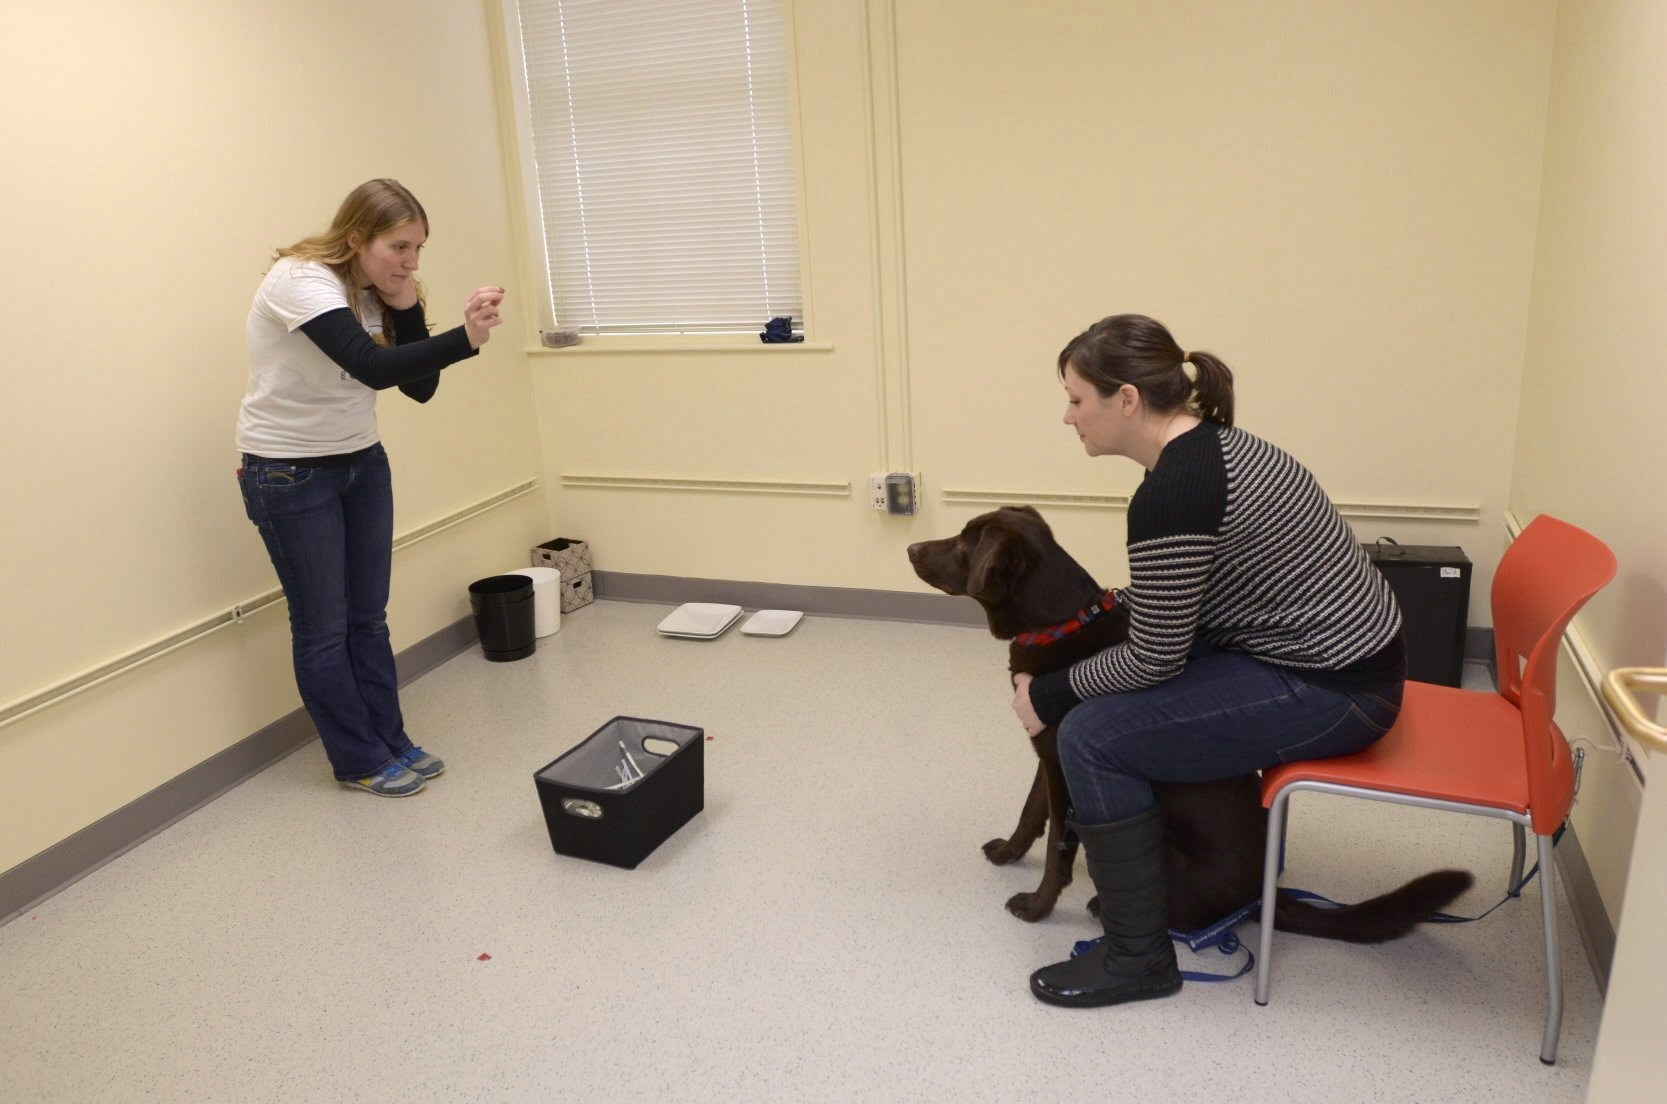 Porter, a 4-year-old chocolate lab mix, is put through behavioral exercises by Angie Johnston, left, at the Canine Cognition Center at Yale University.